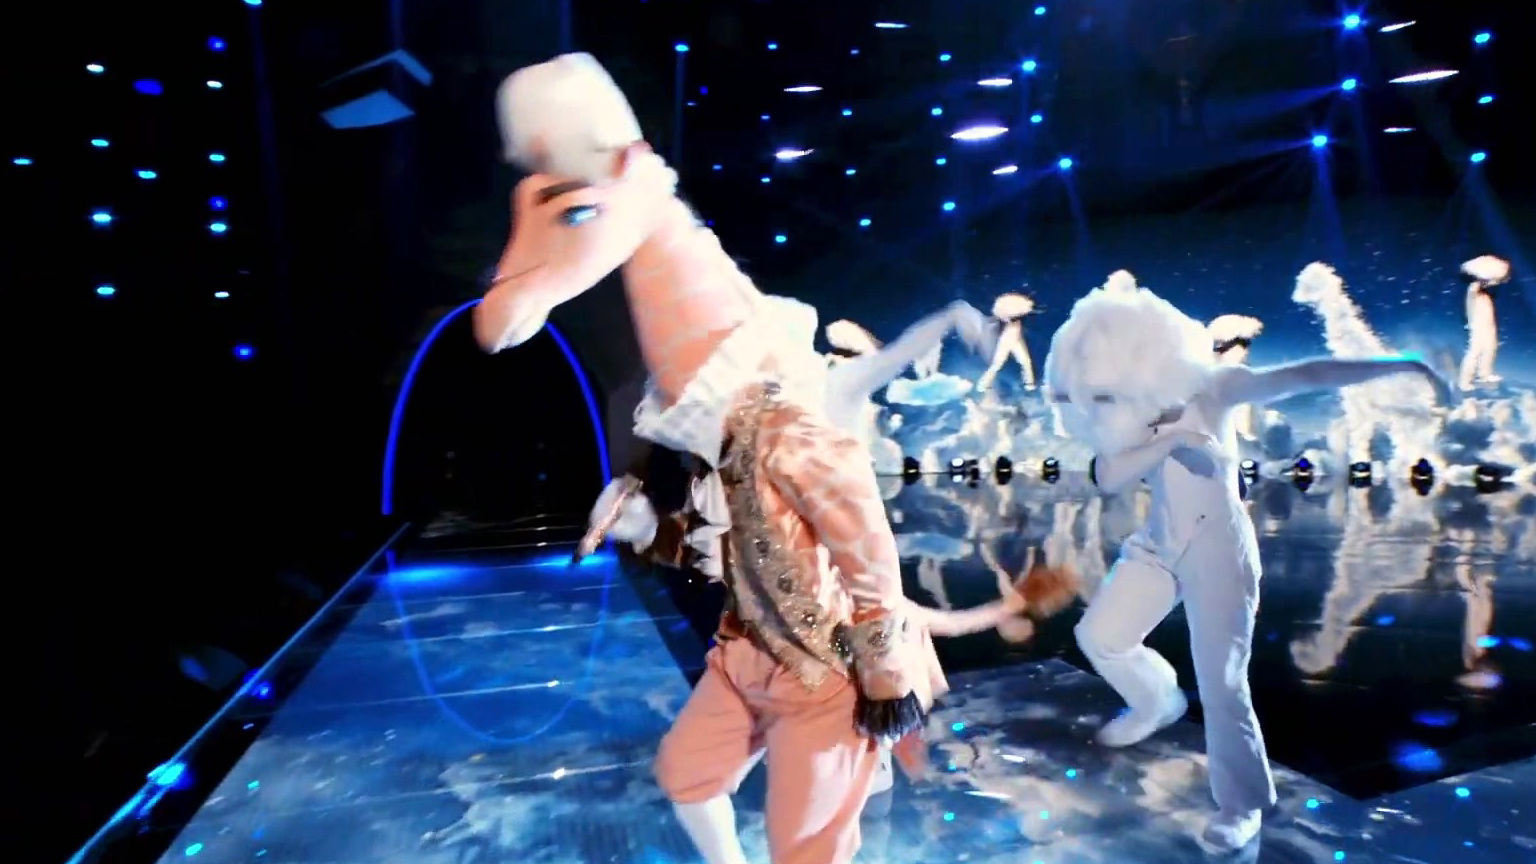 The Masked Singer: Giraffe Performs Get Down On It